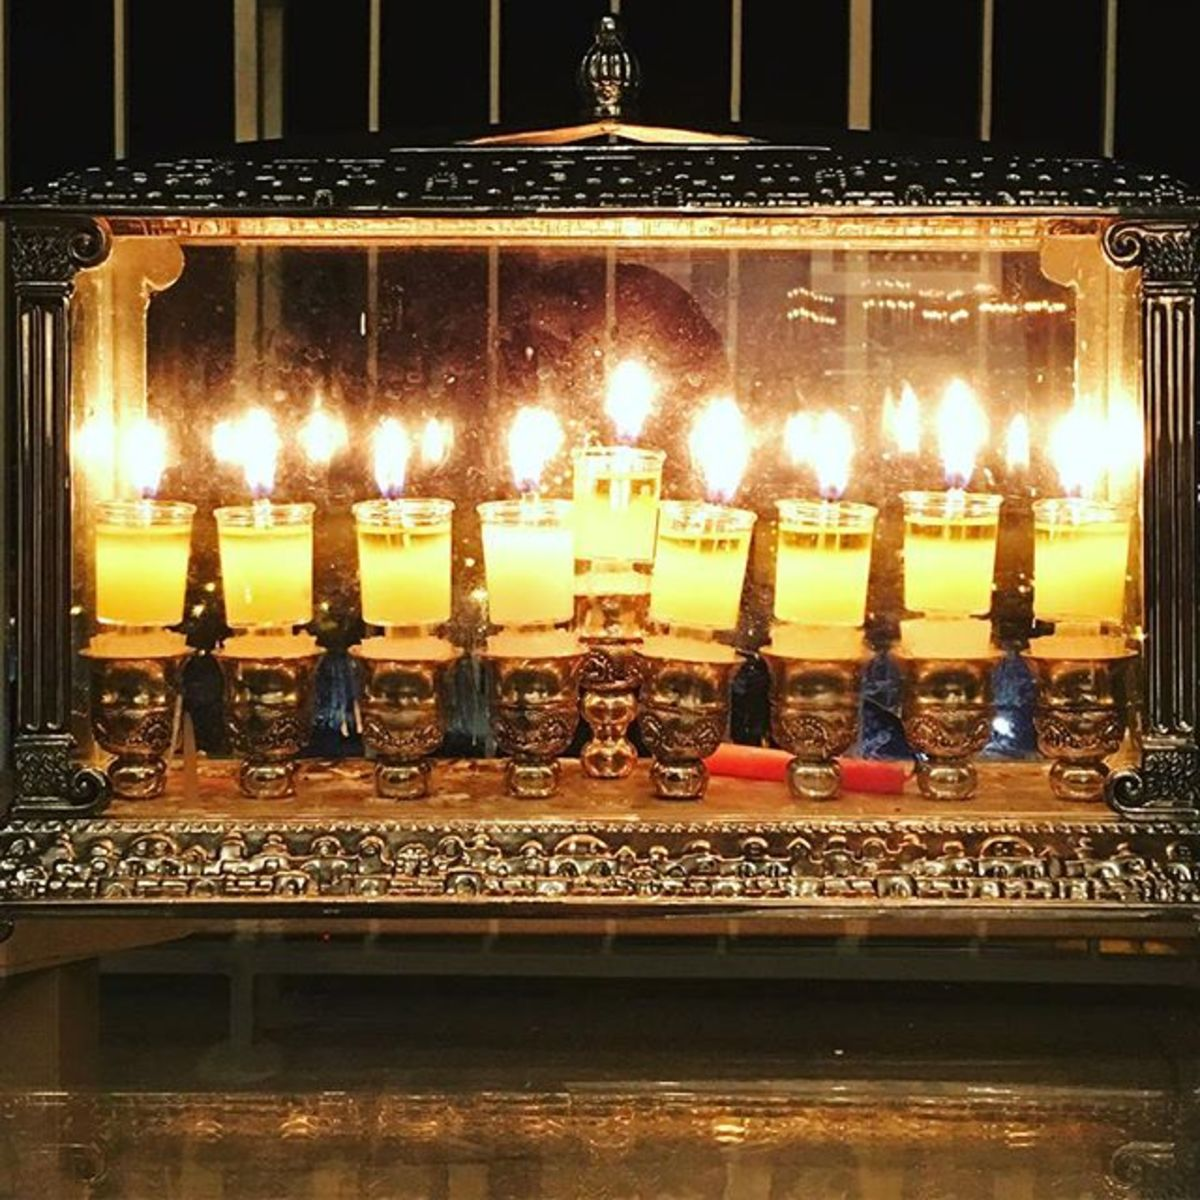 Jamie Geller's outside menorah